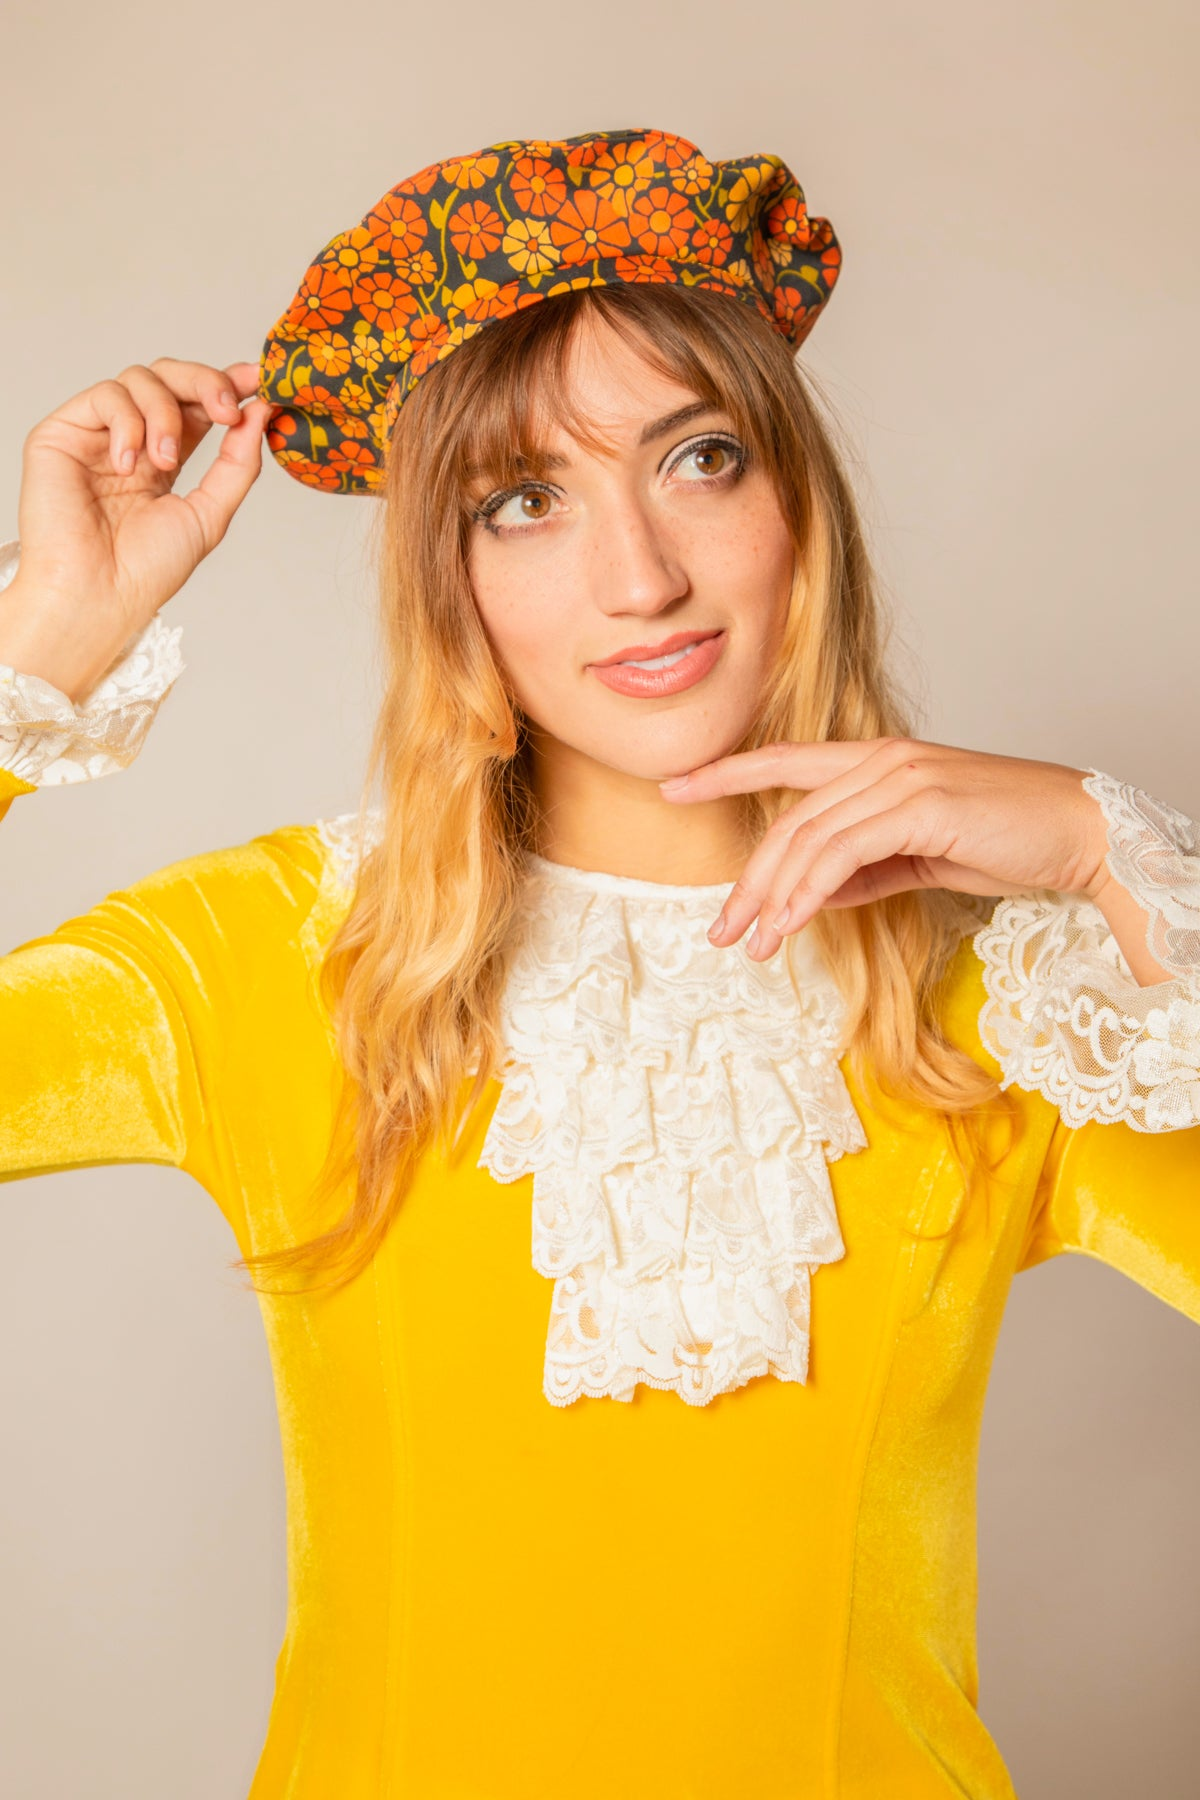 The Marigold Beret